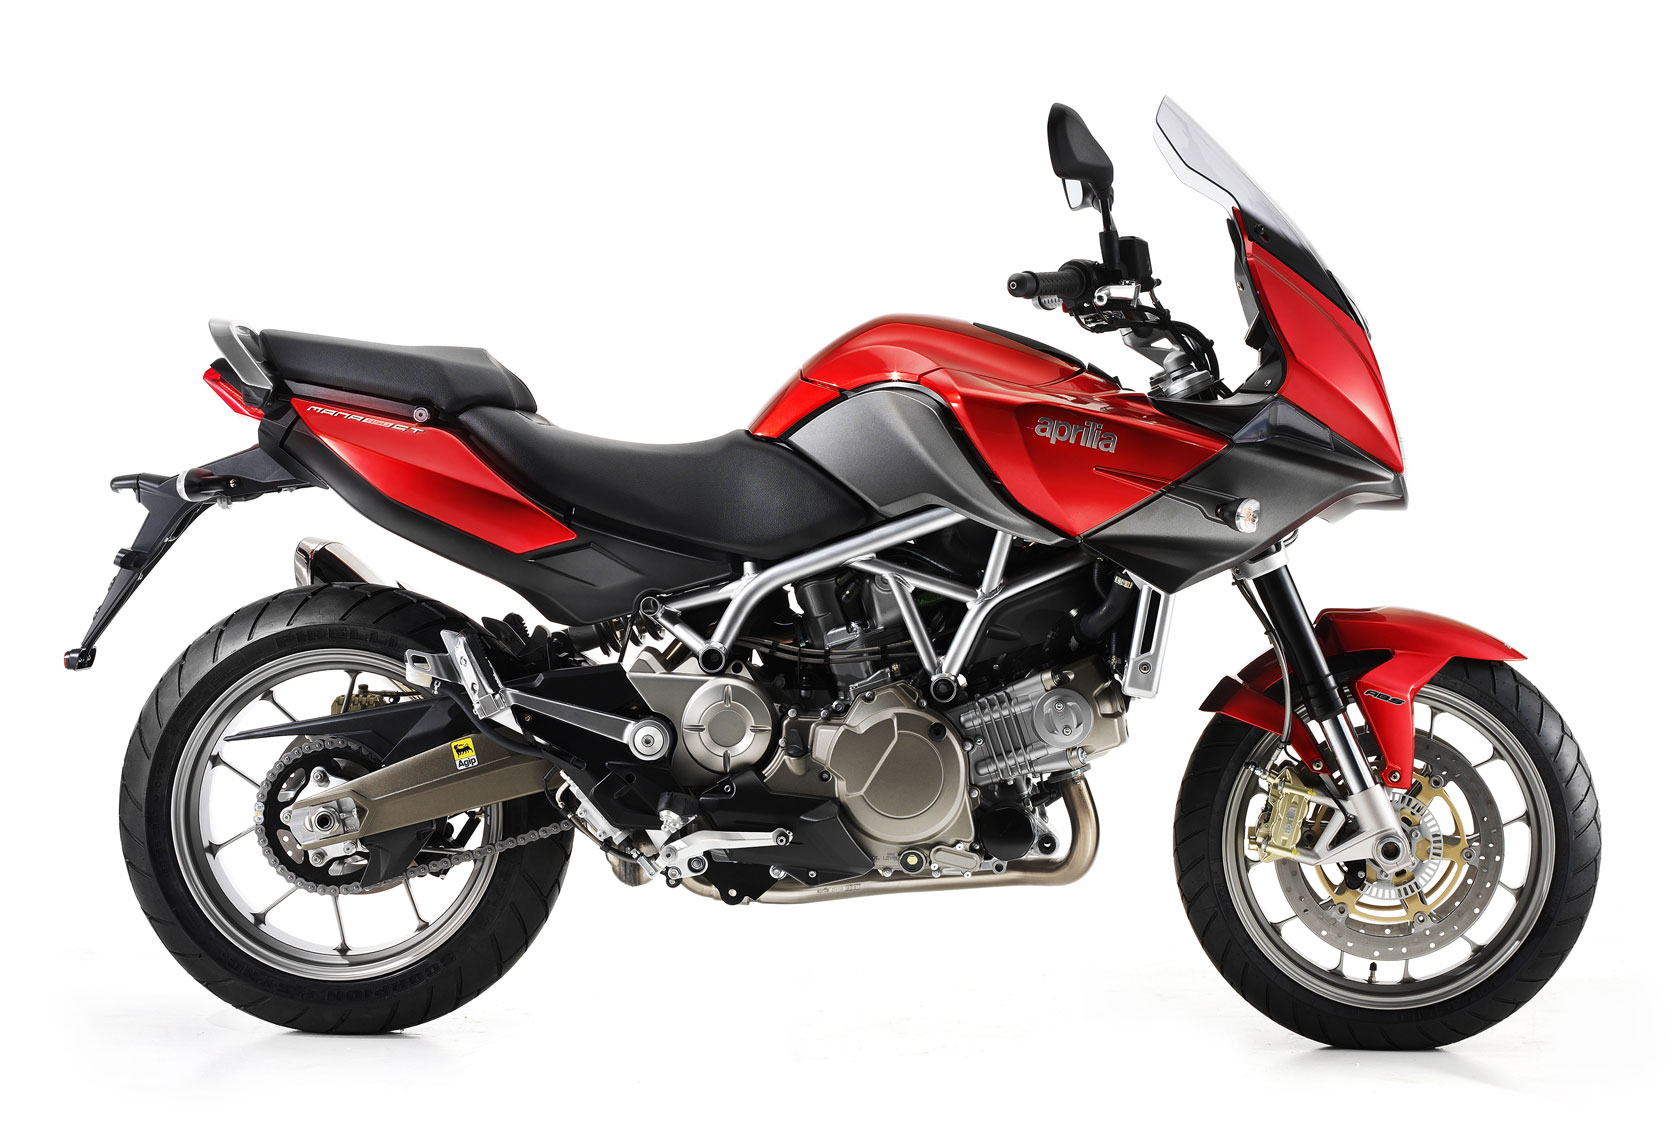 2011 aprilia rsv4 factory se motorcycle model review features and specifications. Black Bedroom Furniture Sets. Home Design Ideas